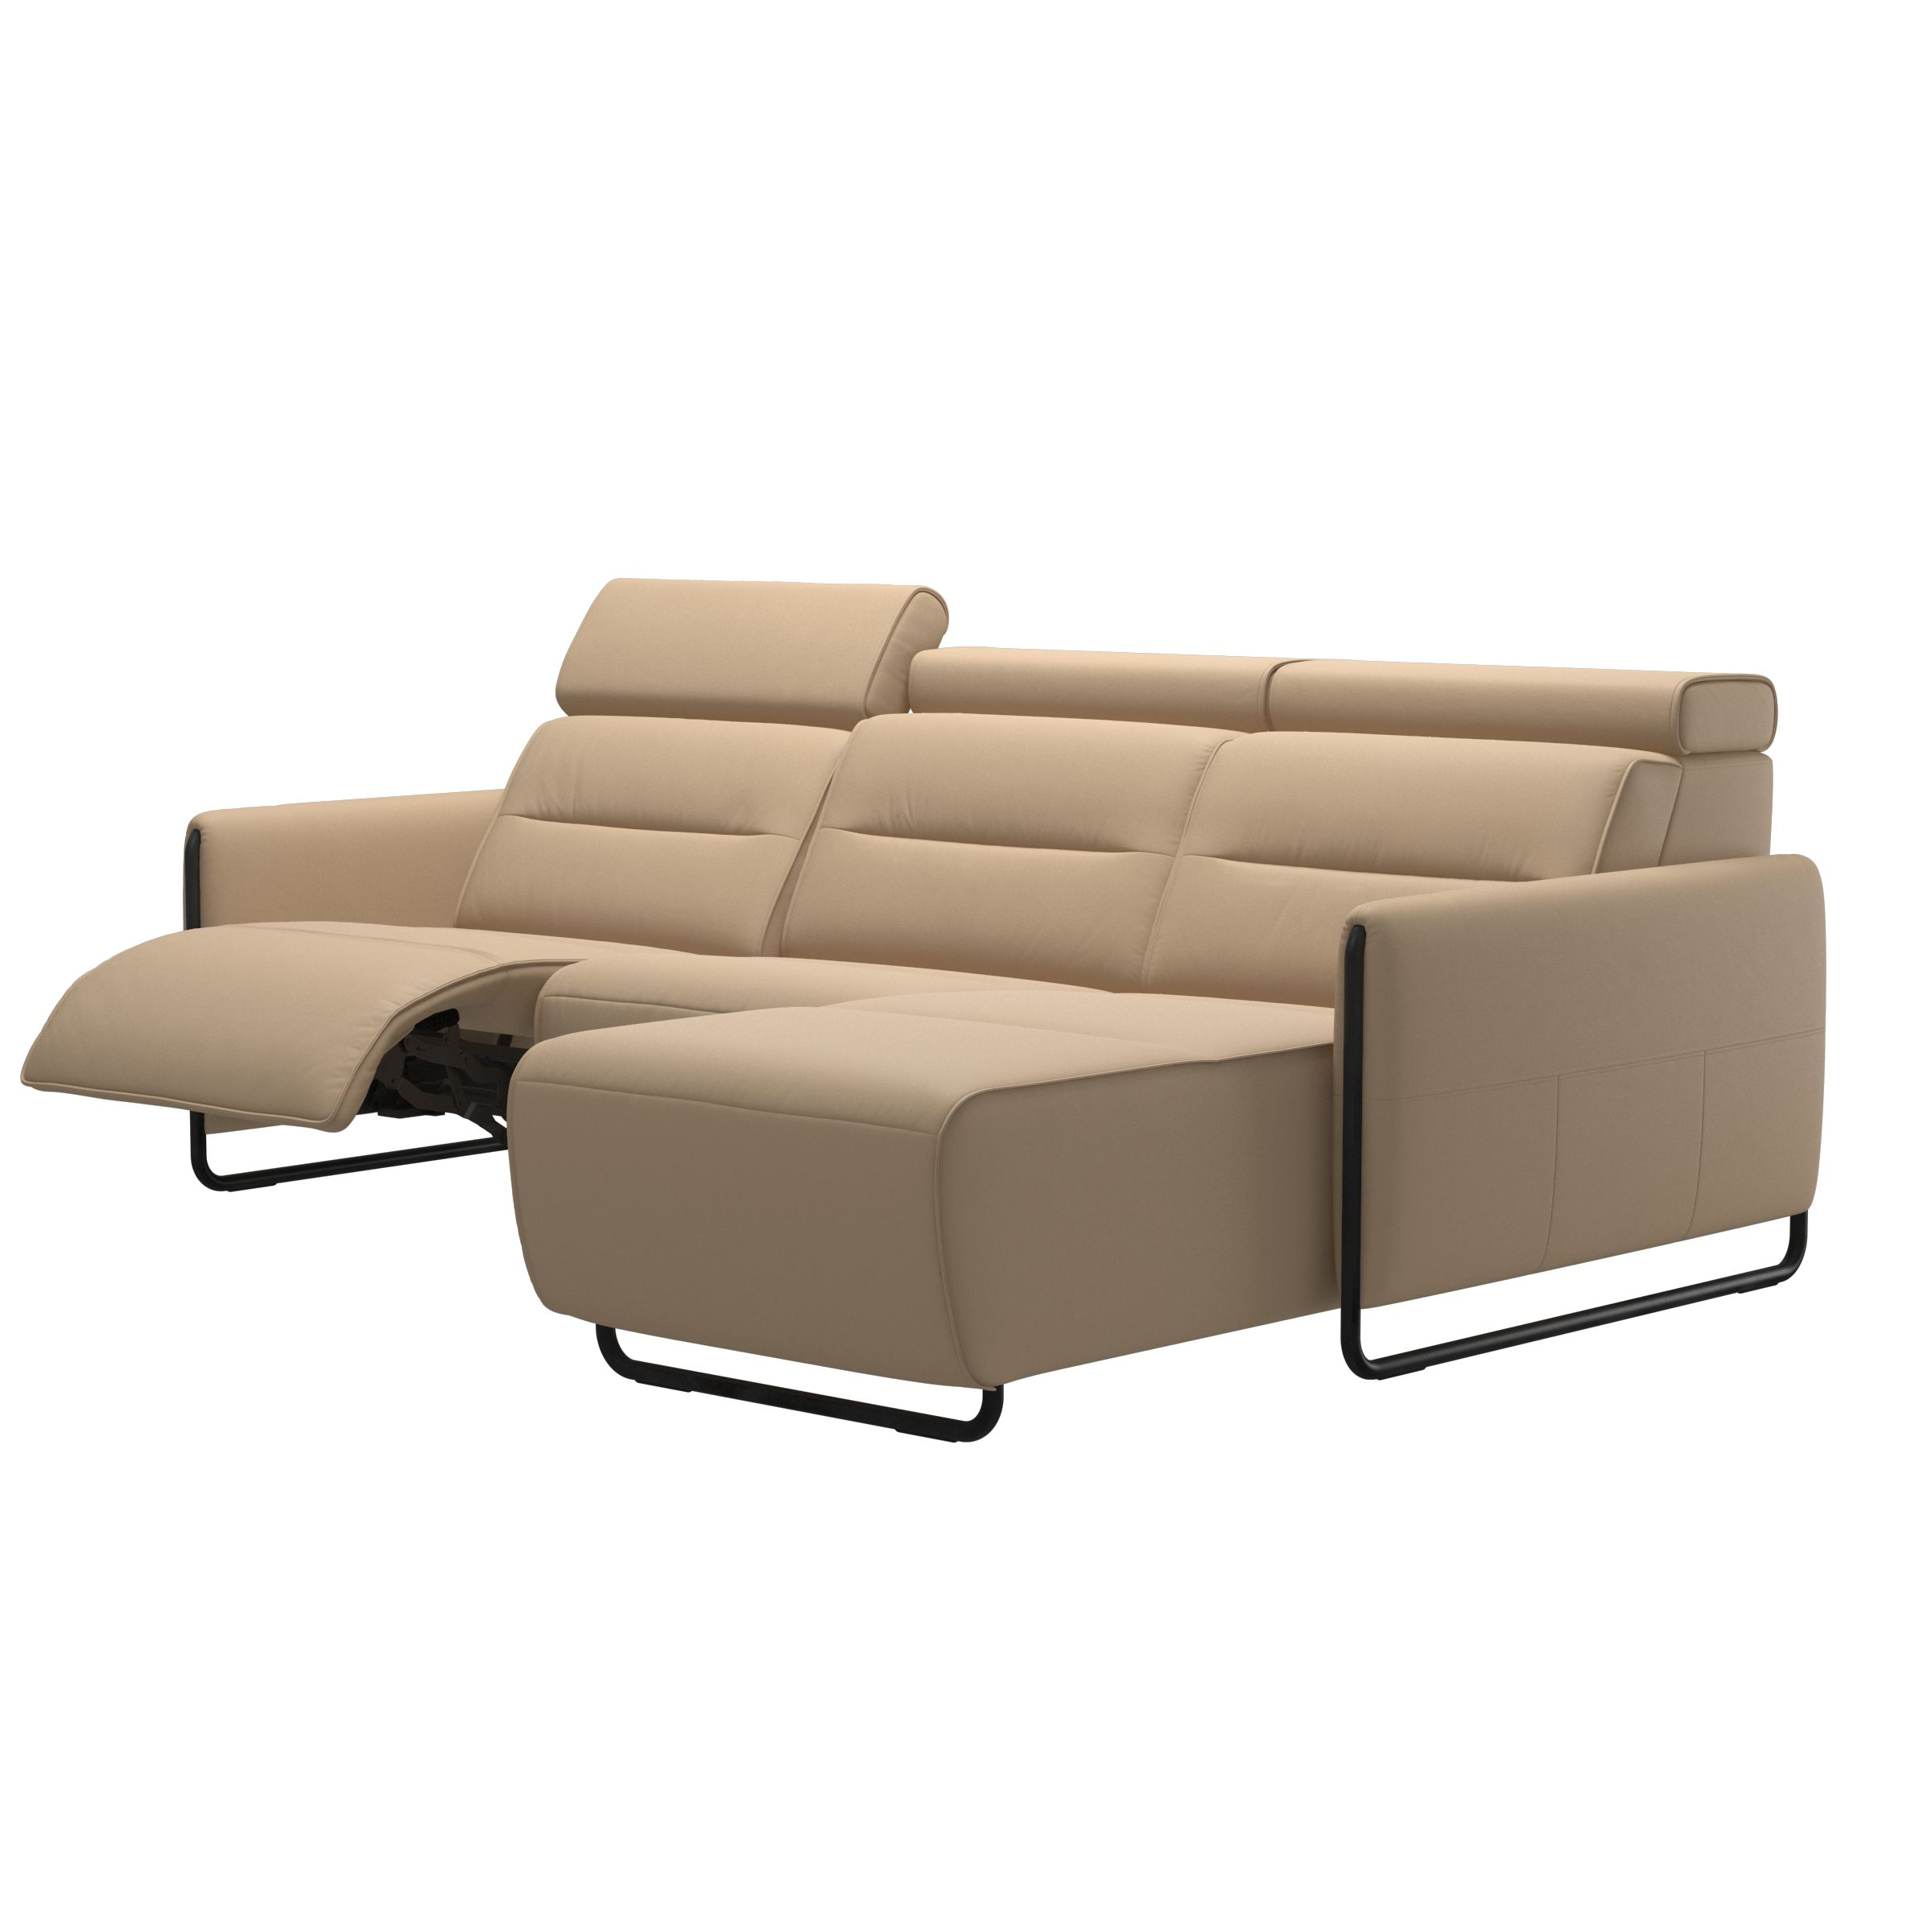 Full Size of Ekornes Stressless Sofa Sale Used Sofas And Chairs Buckingham Manhattan Leather Review Ebay Uk Couch Furniture Kleinanzeigen Emily Sectional Ambiente Modern Sofa Stressless Sofa